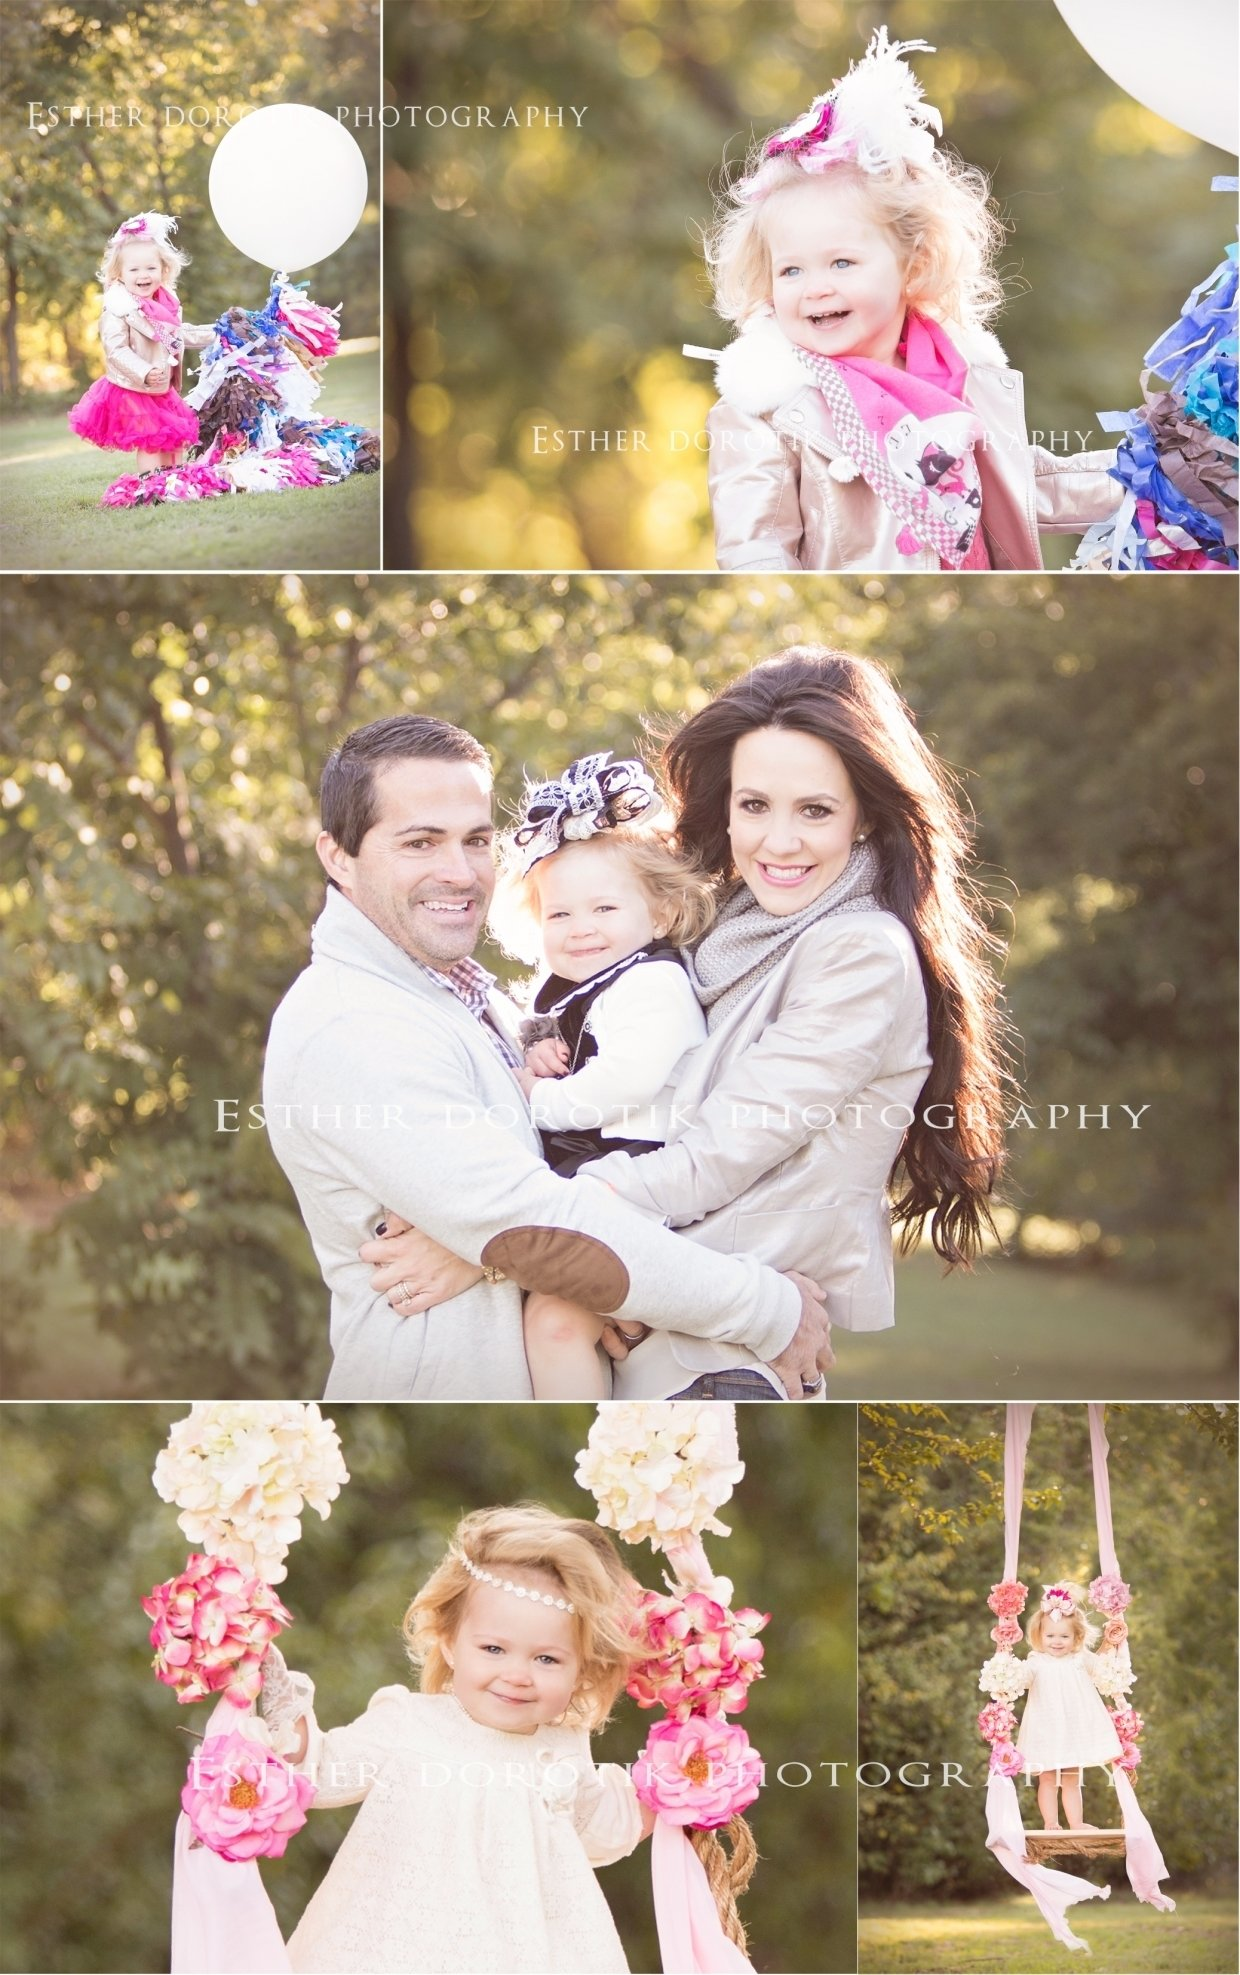 10 Trendy Family Christmas Photo Ideas With Baby dallas family photographer frisco family photographer fort worth